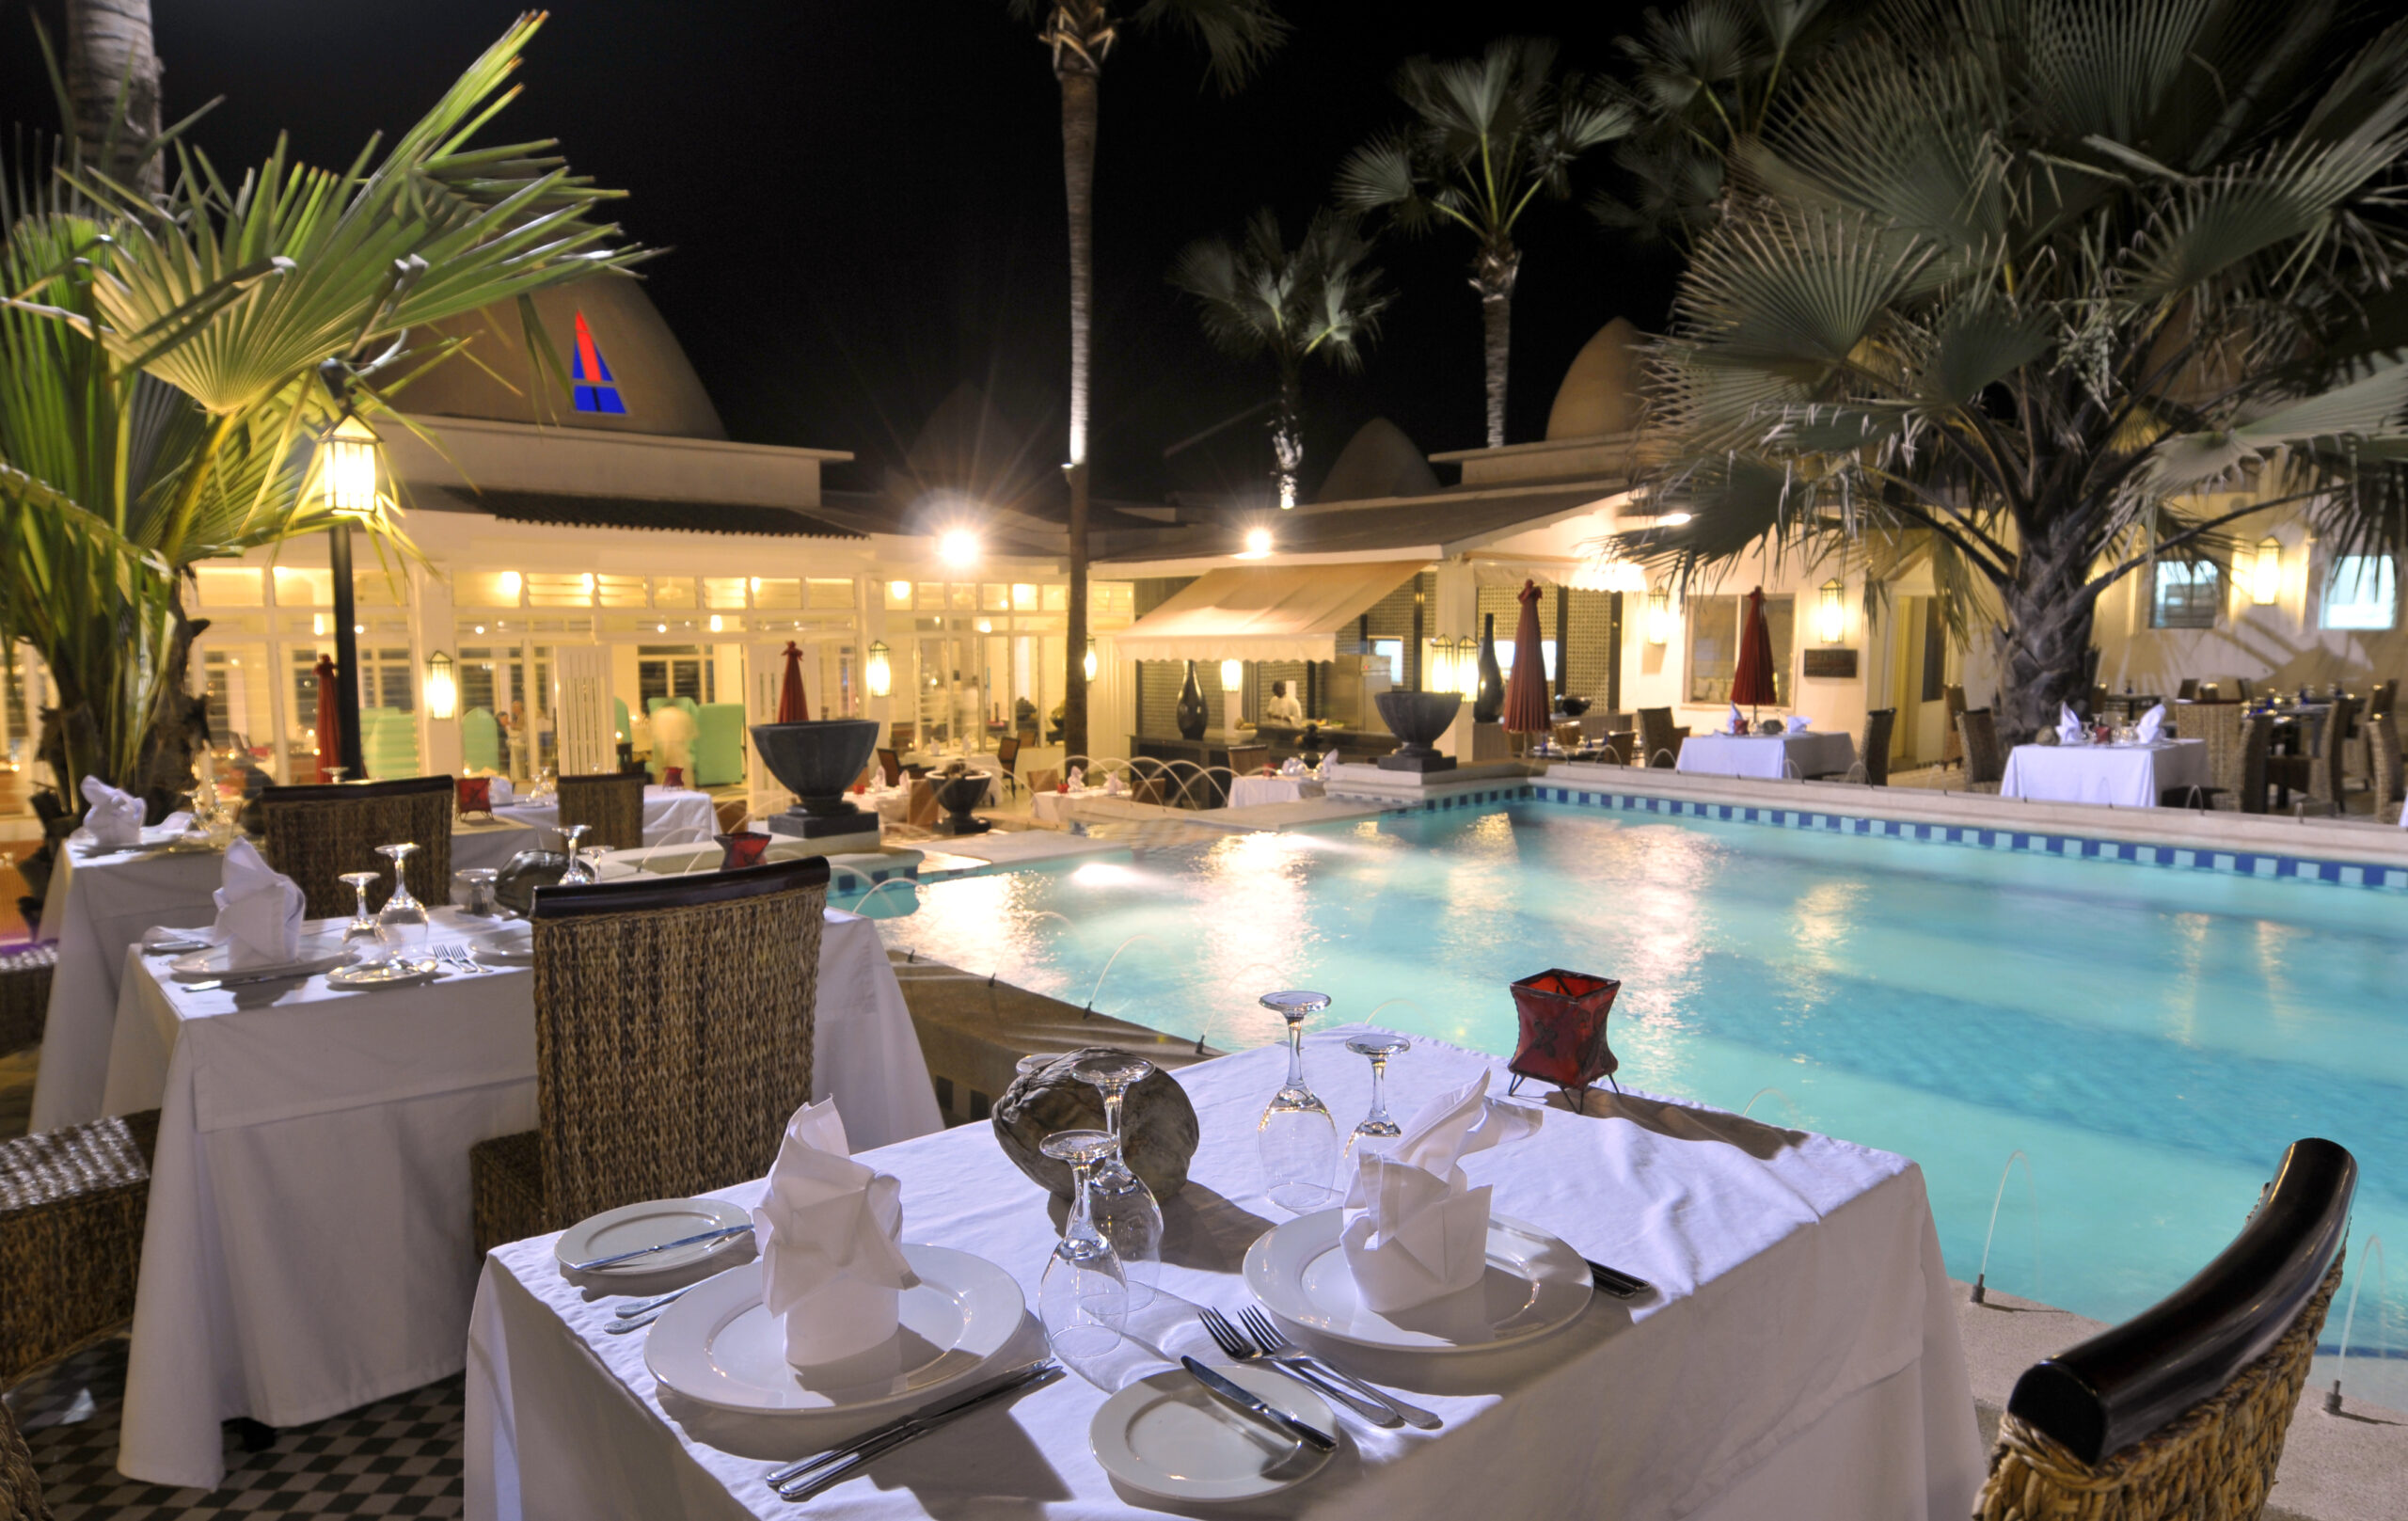 Courtyard Dining scaled - THE GAMBIA 2021/22: WHY IS WEST AFRICA'S BEST RESORT AND SPA A PERFECT SPOT FOR A WINTER ESCAPE?